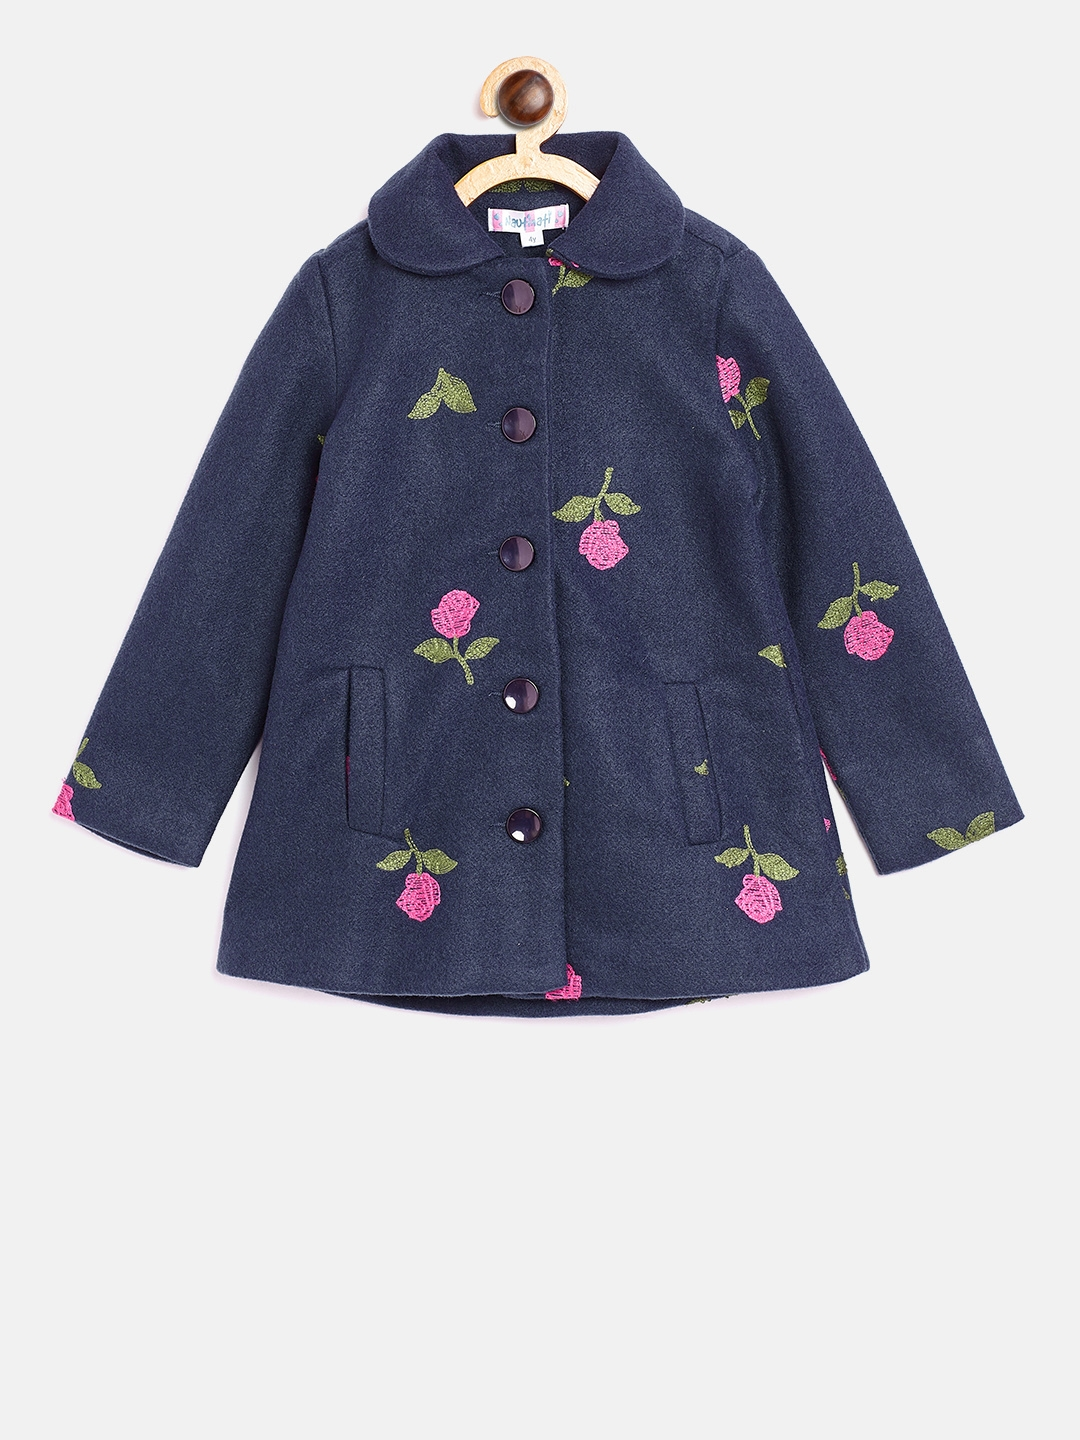 29db62f7b03f Buy Nauti Nati Girls Navy Blue Embroidered Pea Coat - Coats for ...